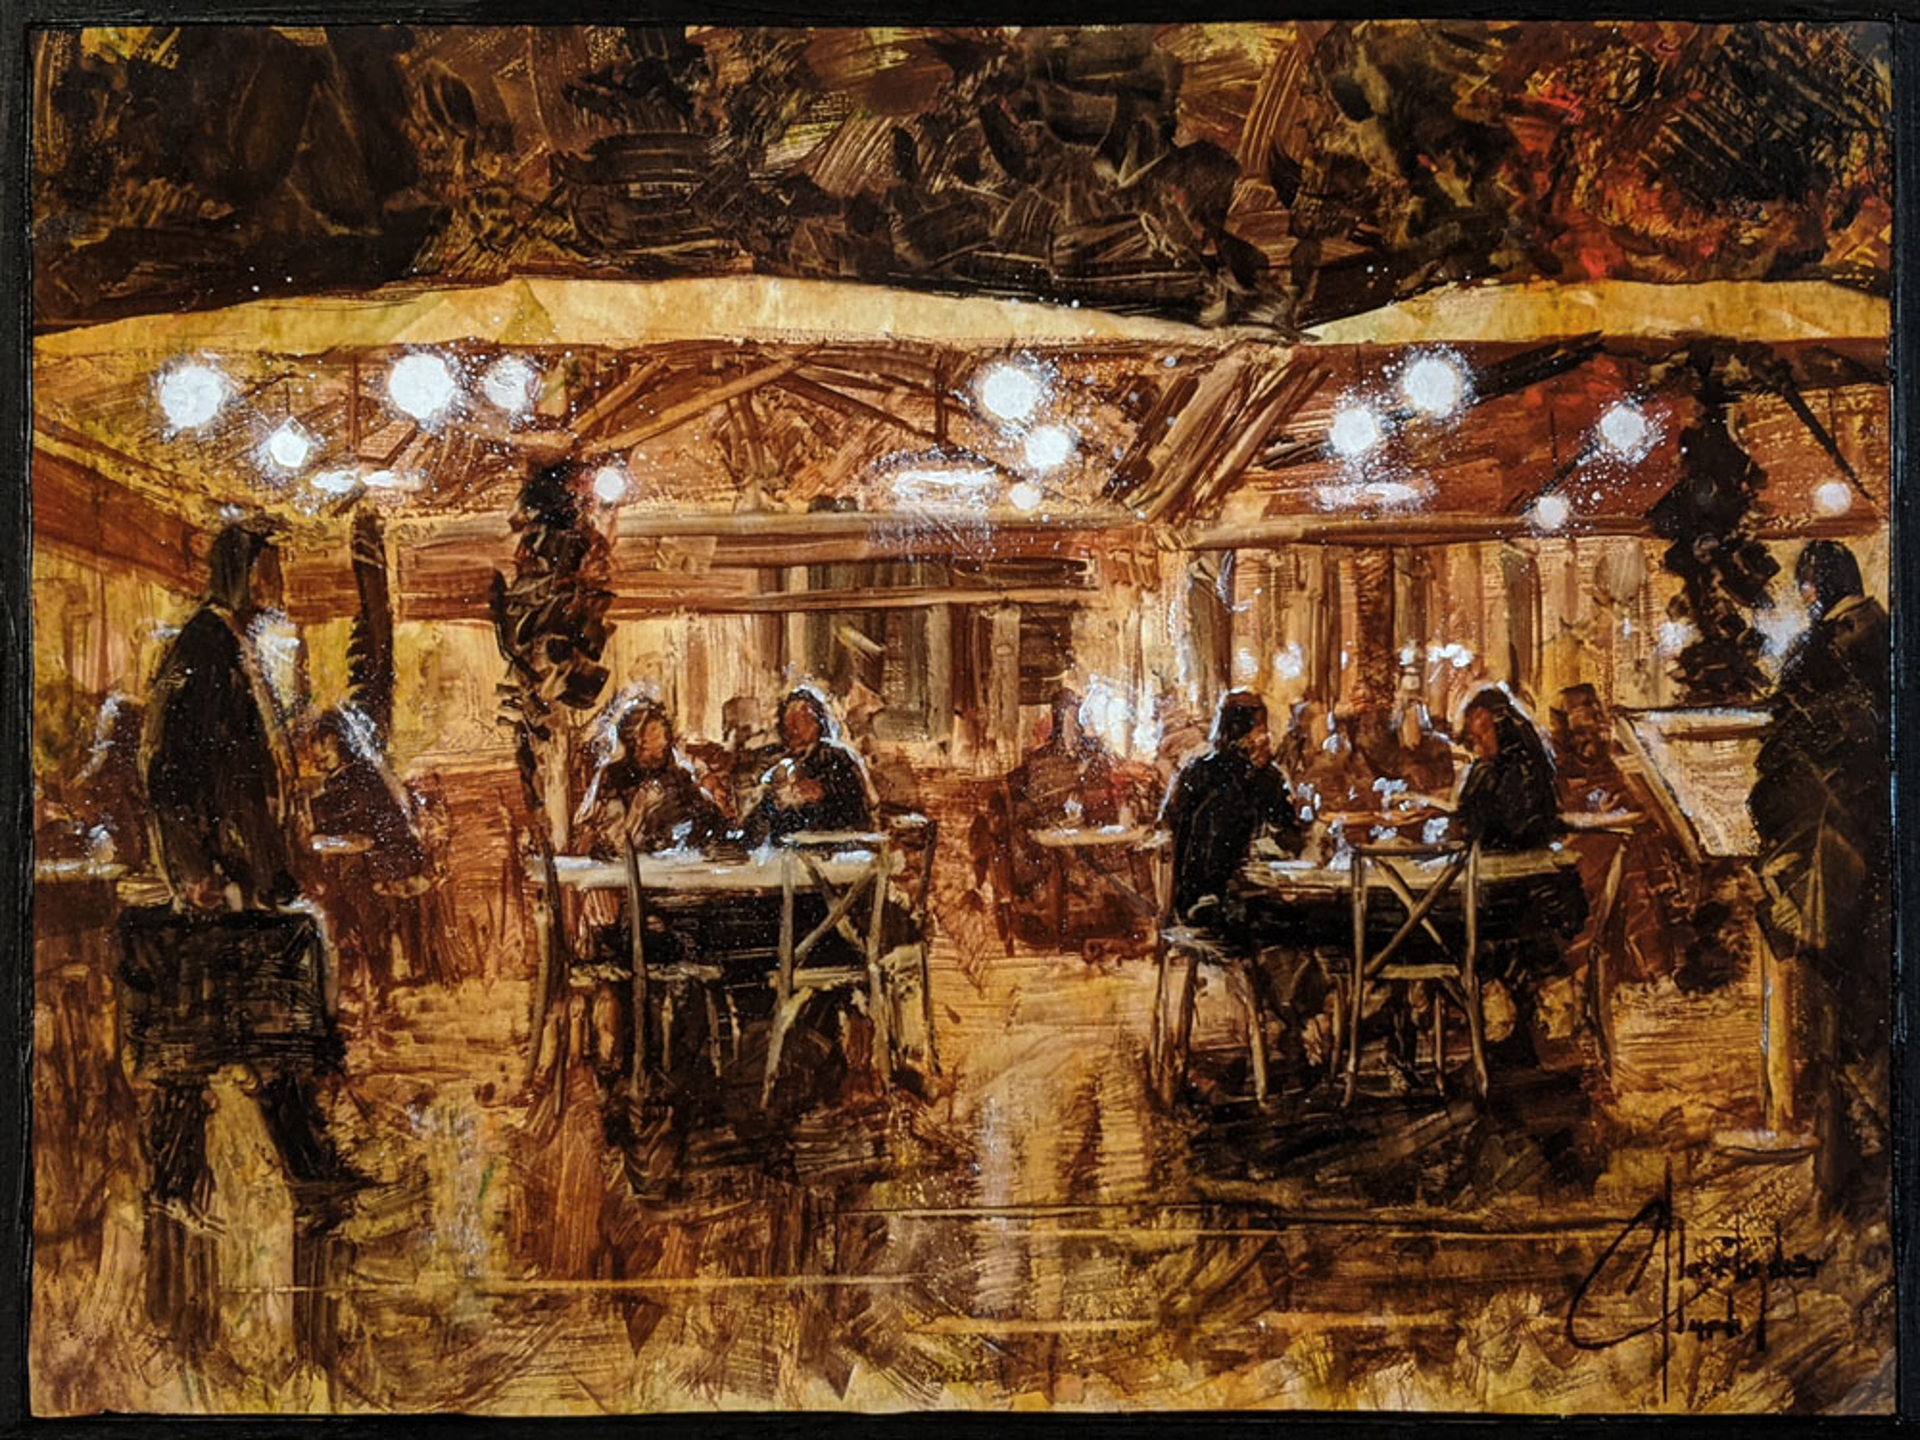 Barcelona Cafe by Christopher Clark